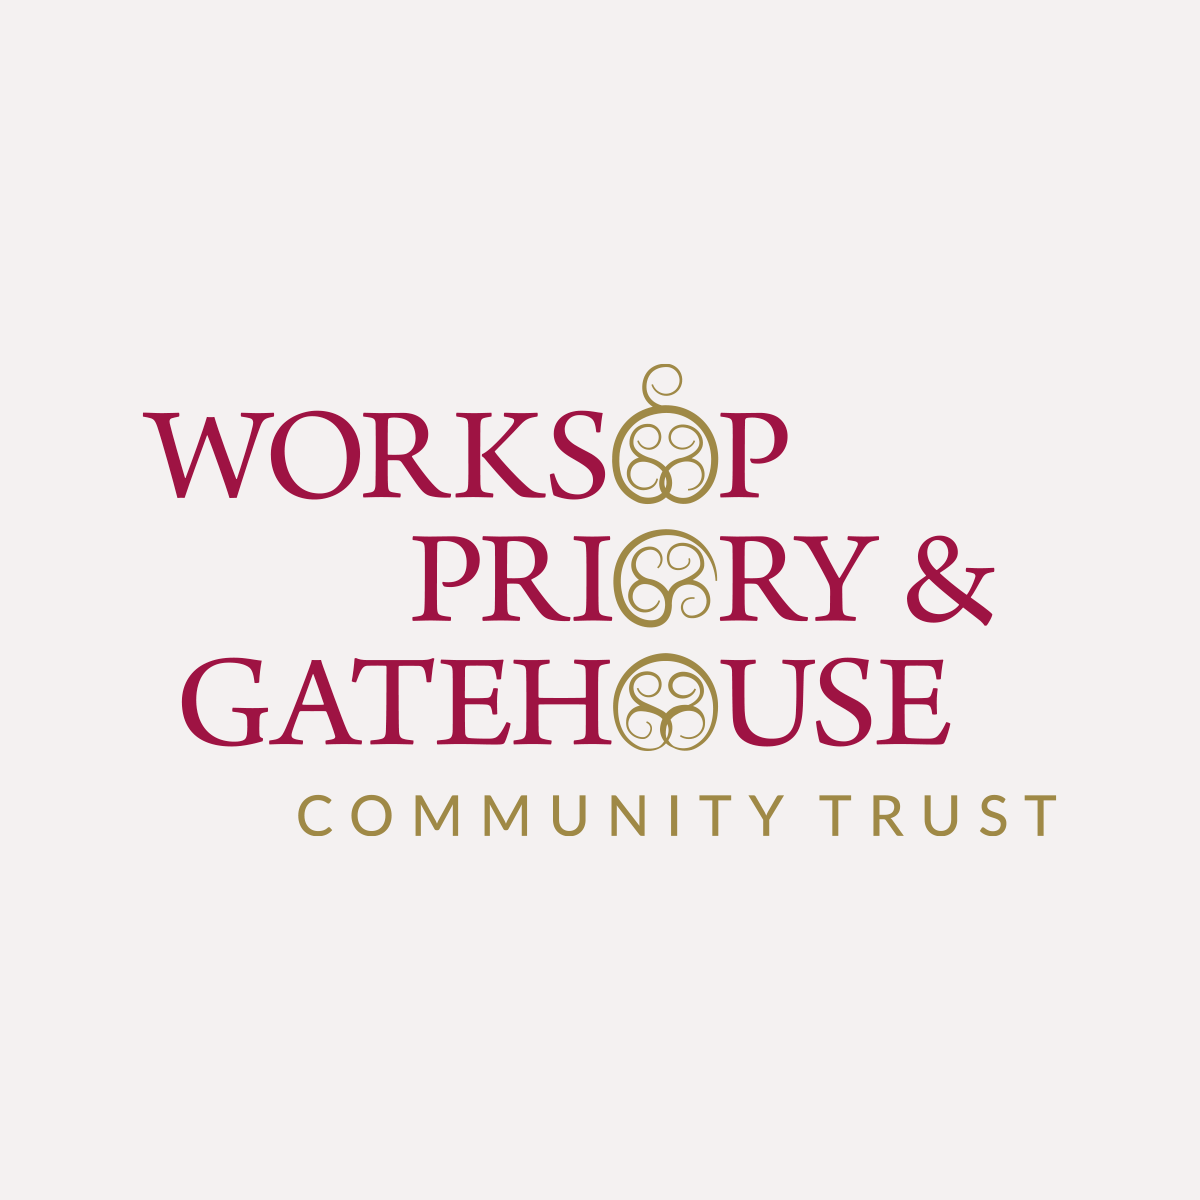 Identity for Worksop Priory & Gatehouse Community Trust, WP&GCT logo